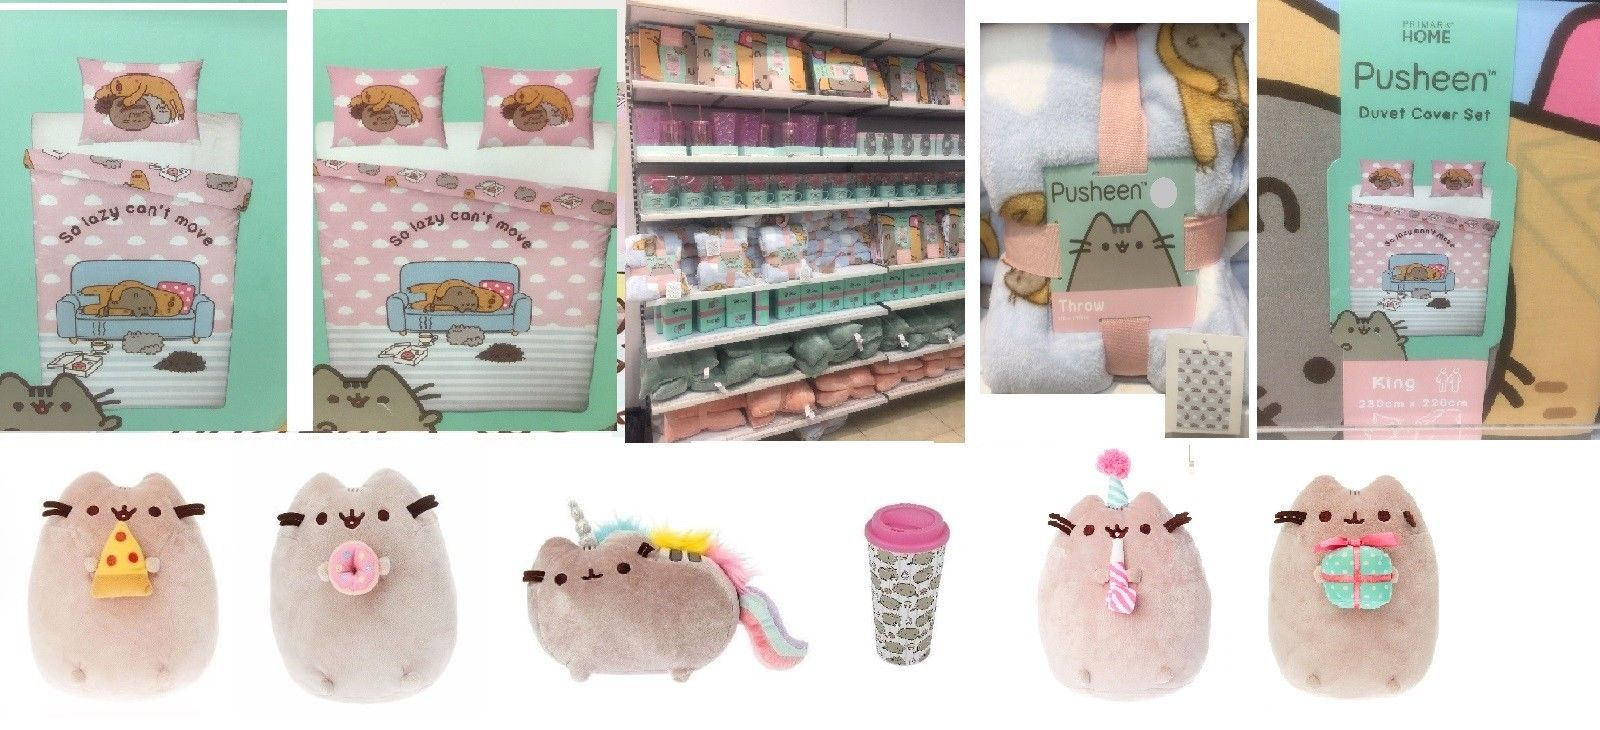 Pusheen The Cat Double King Duvet Cover Bed Set Throw